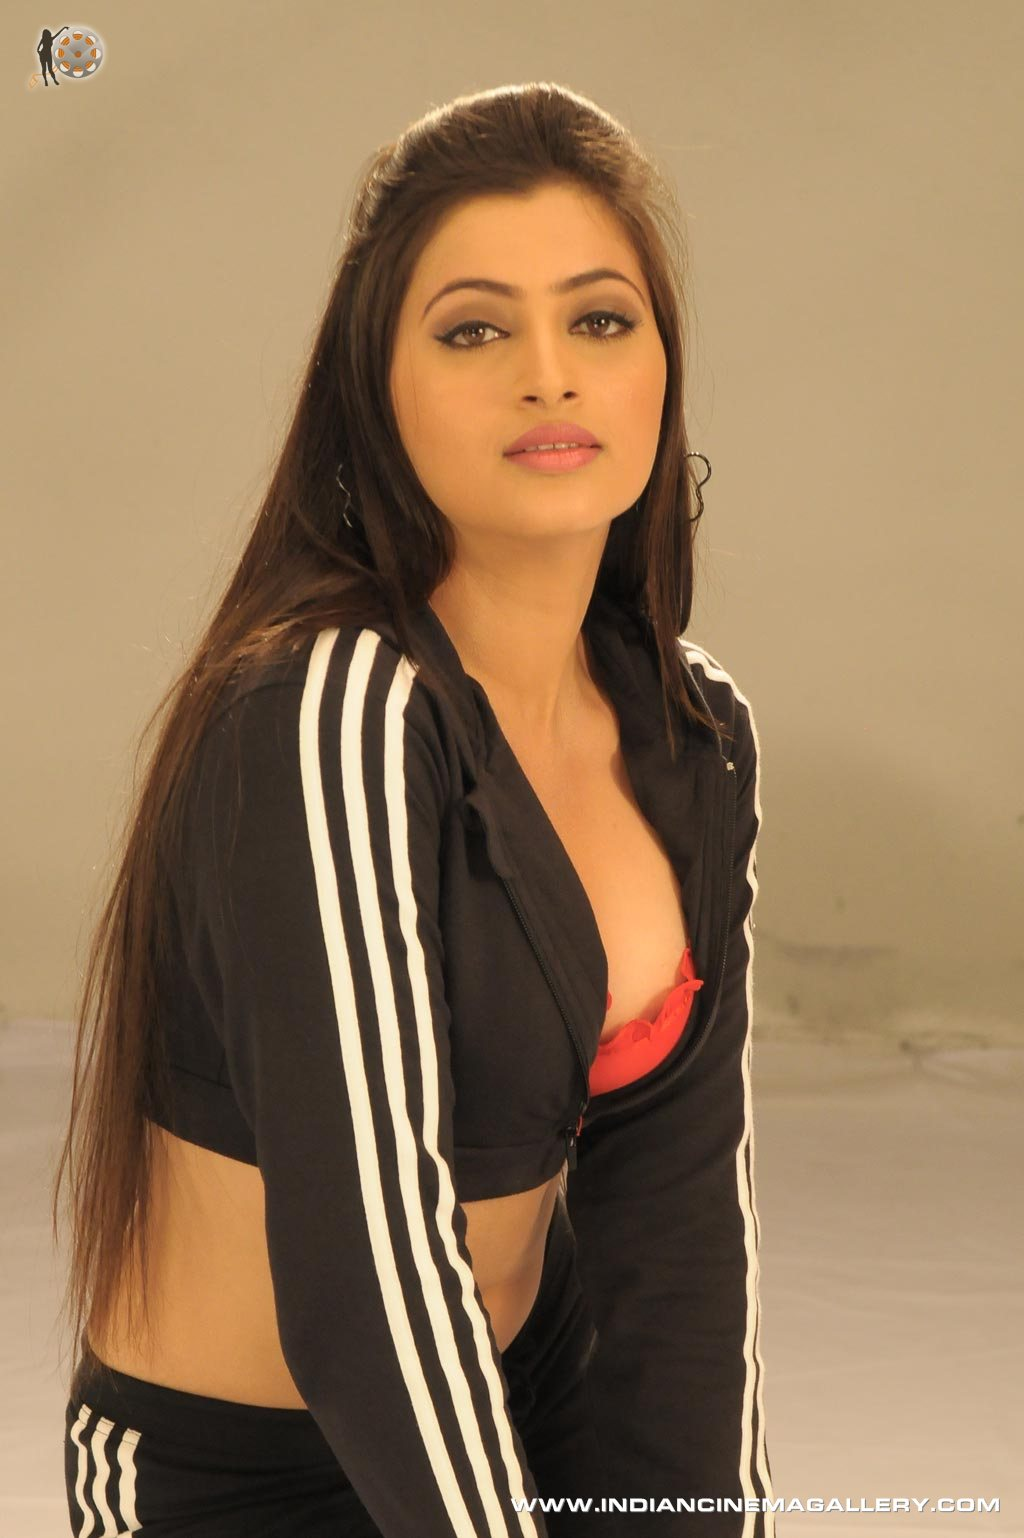 BEST IMAGES OF BOLLYWOOD ACTRESS: NAVNEET KAUR